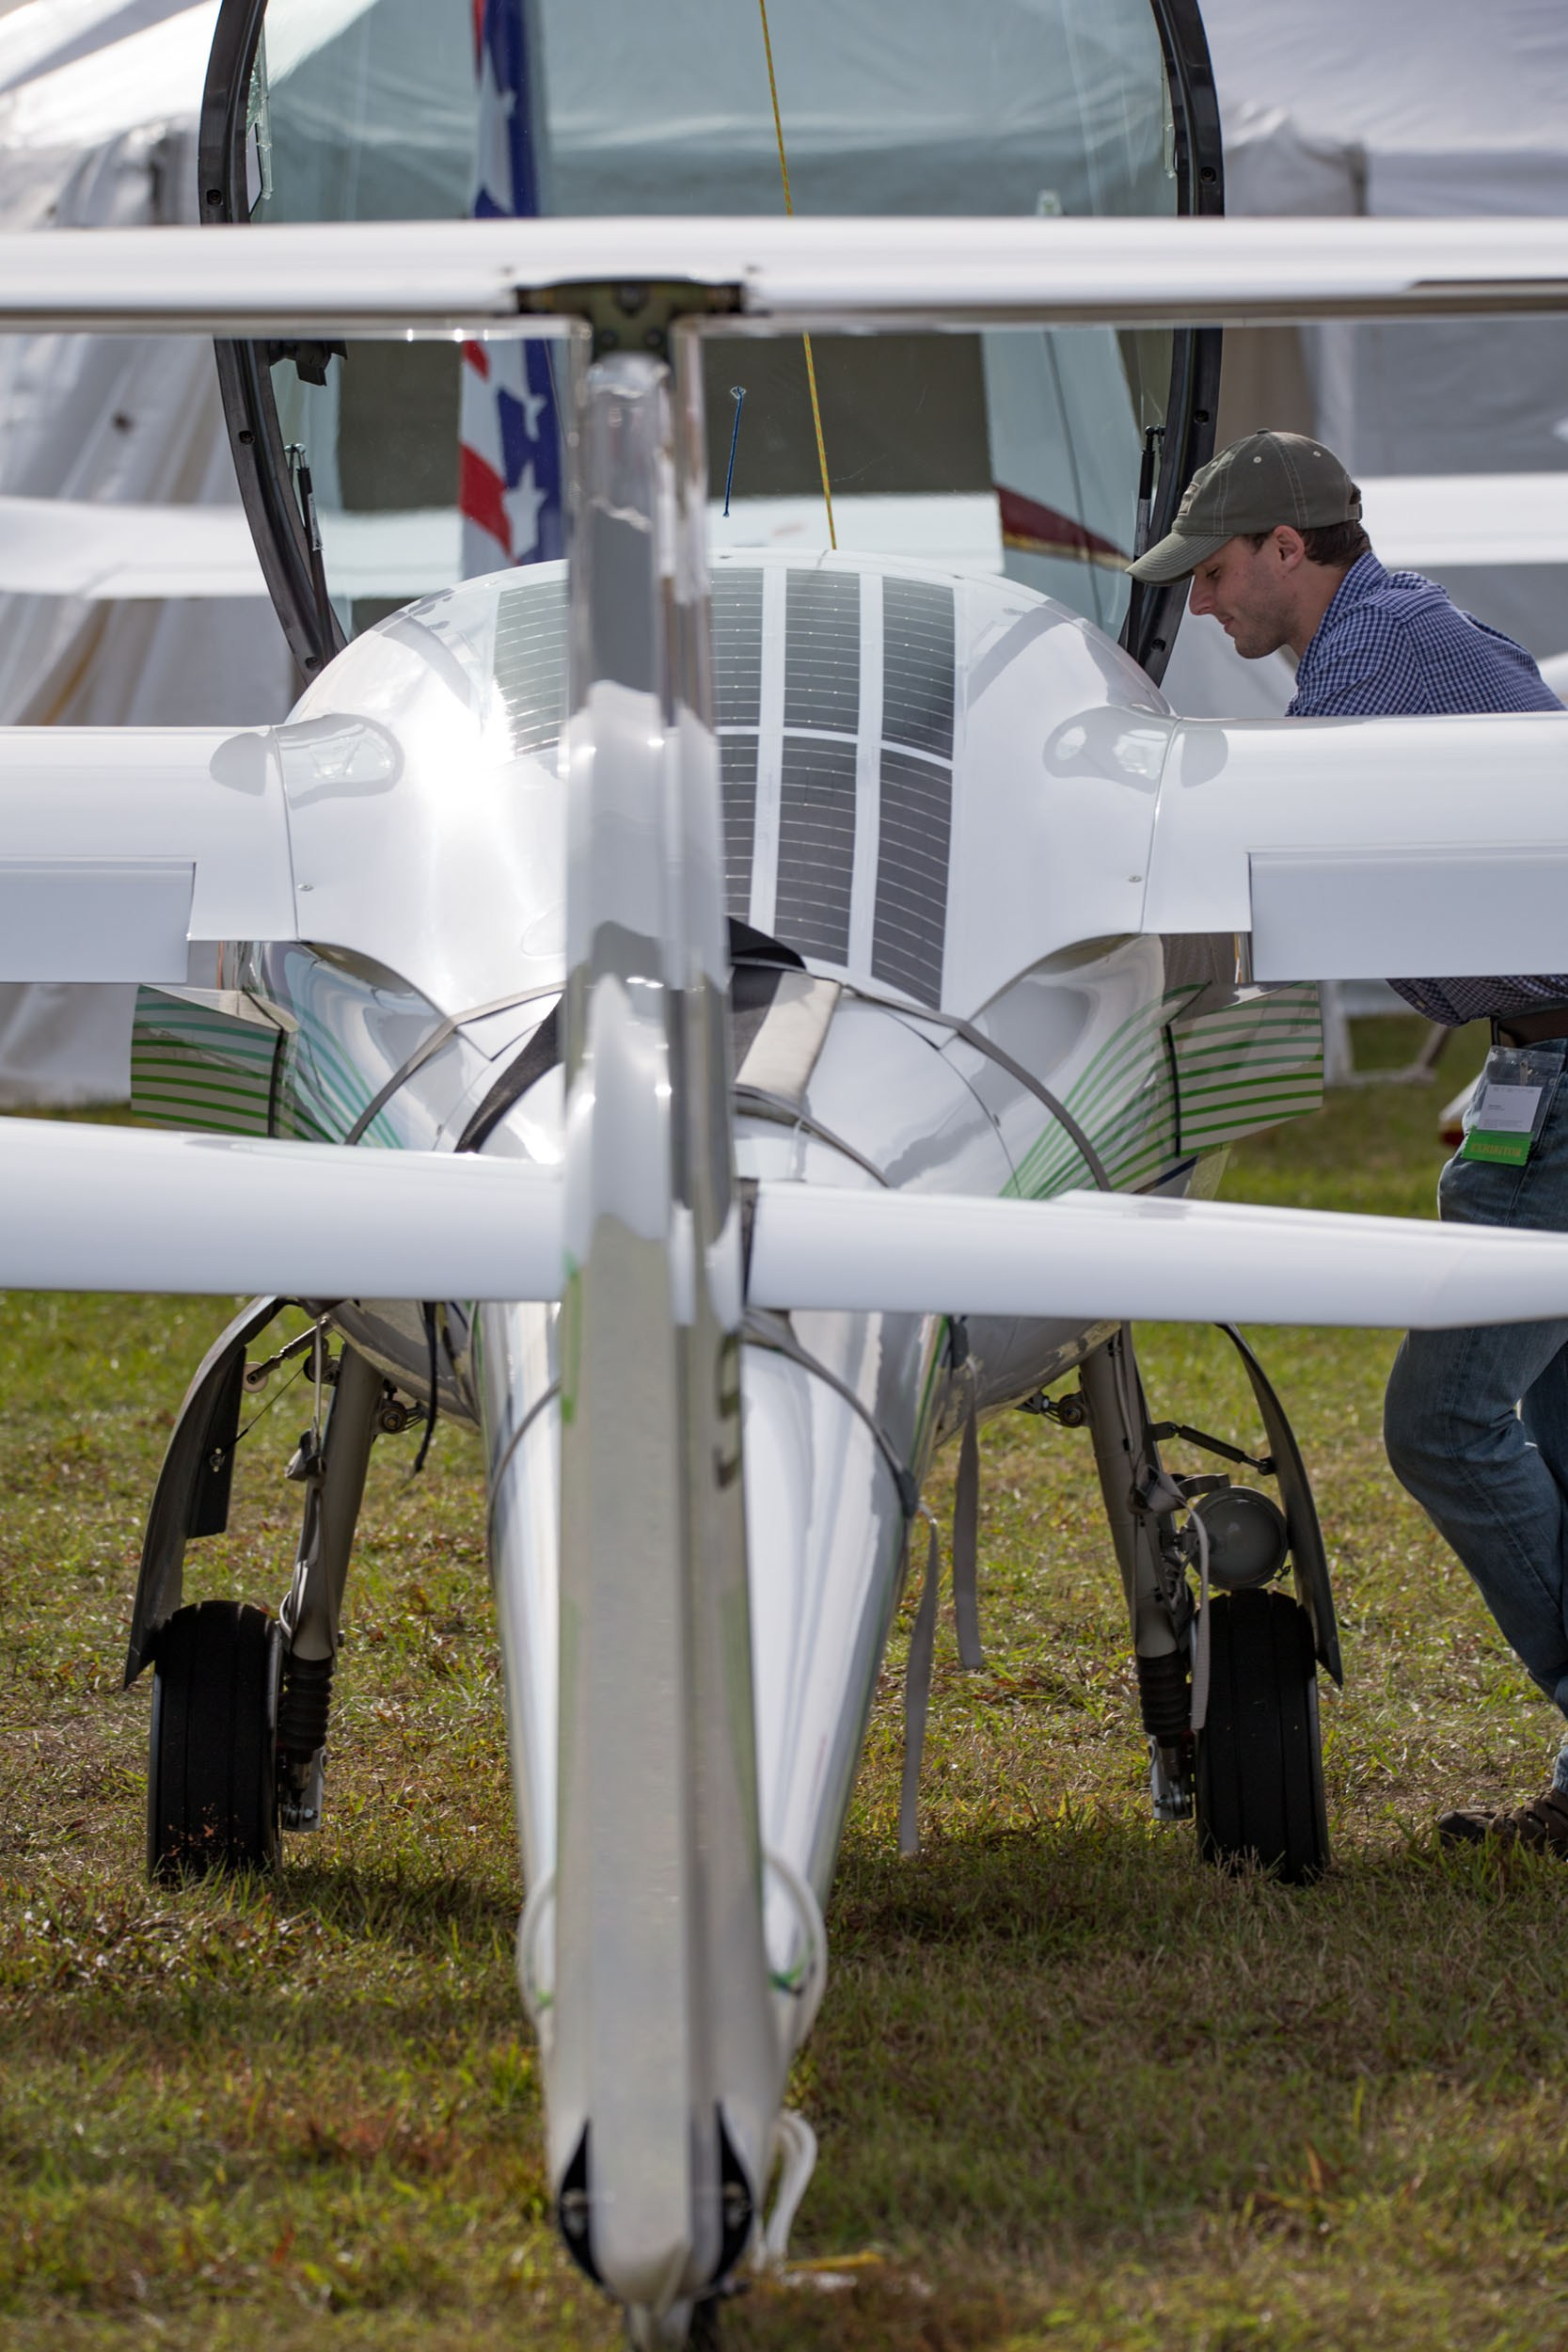 This airplane sports rows of solar cells behind its canopy. Photo courtesy U.S. Sport Aviation Expo.